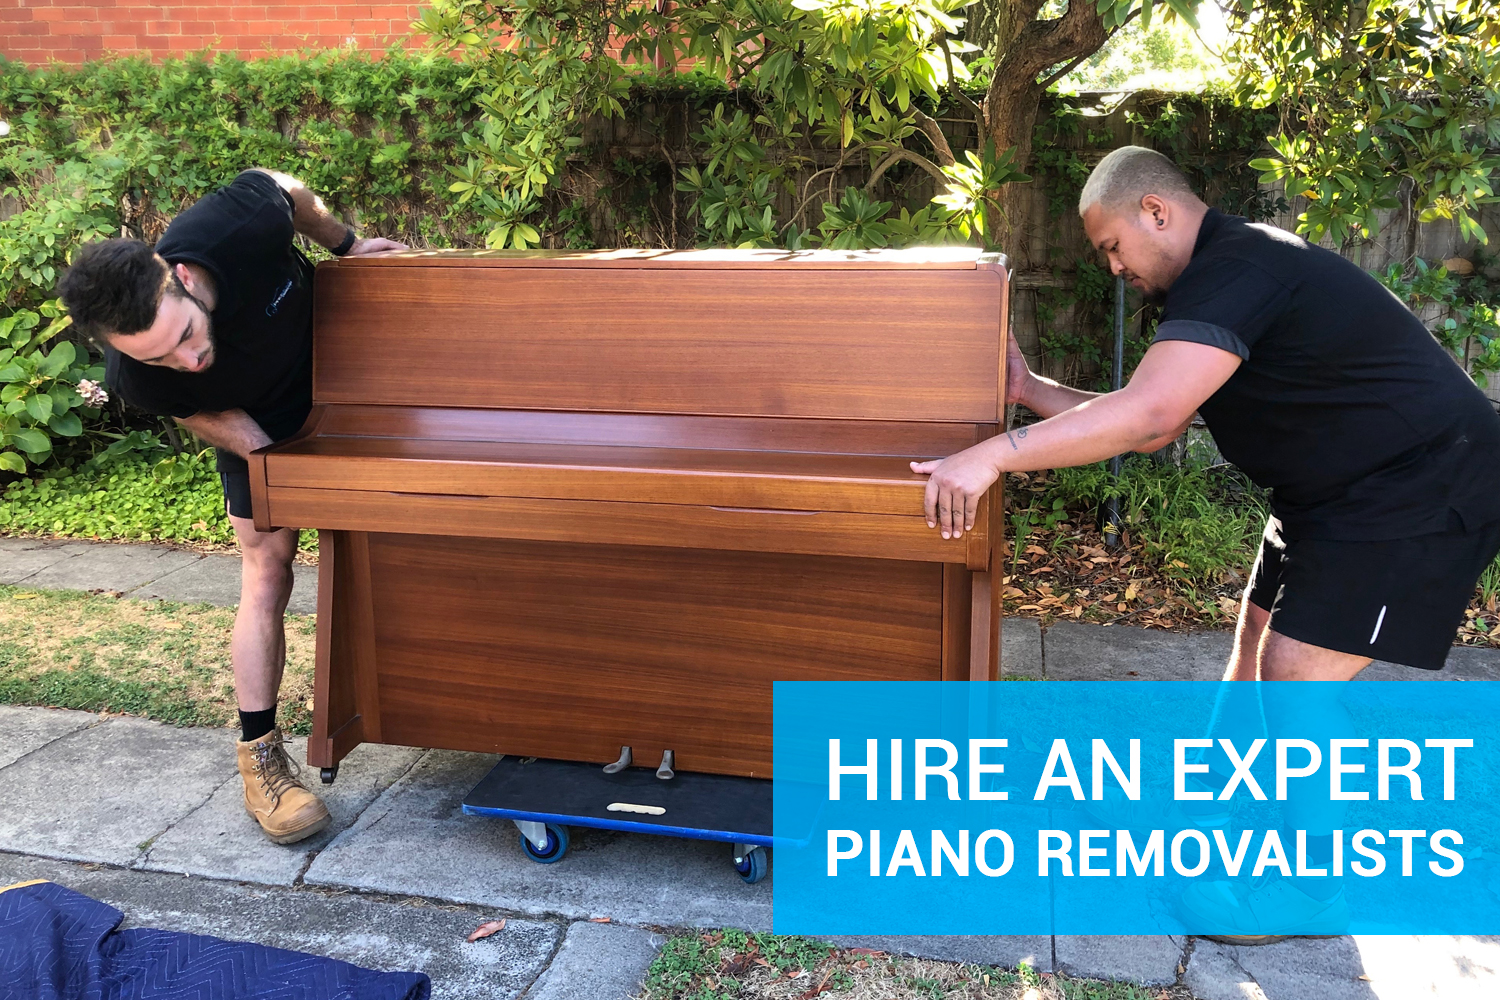 Hire an Expert Piano Removalists & Avoid Risks of Wrecking Your Back